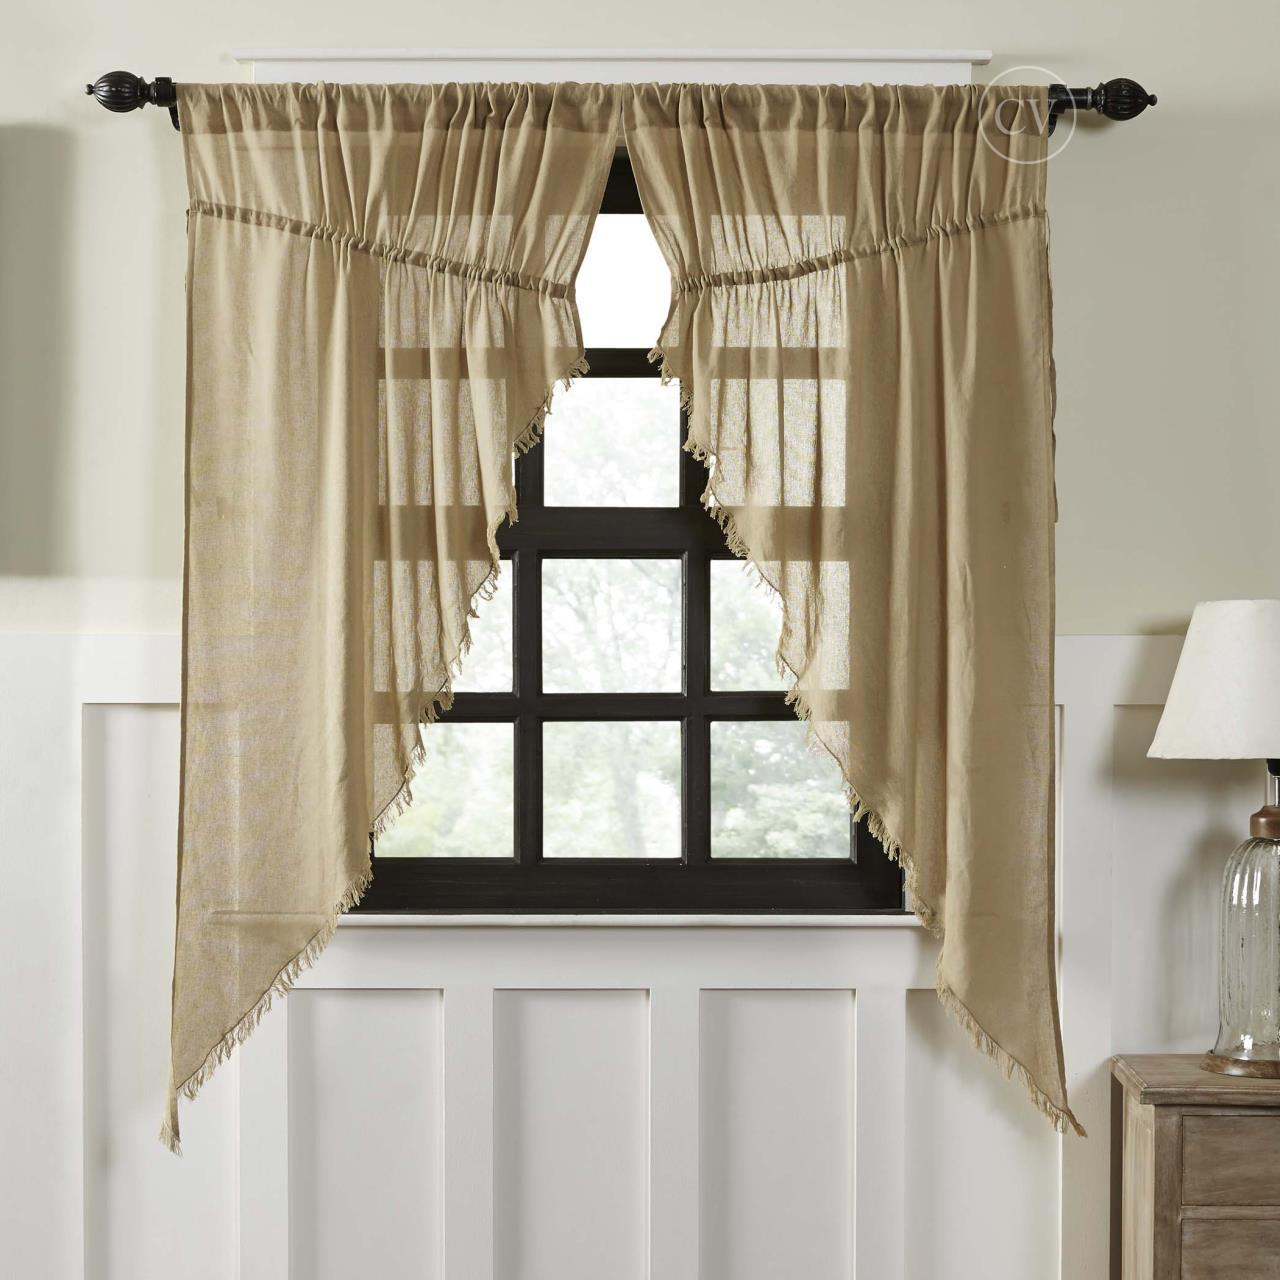 Primitive Curtains for Warm and Friendly Effects in the Home Interior